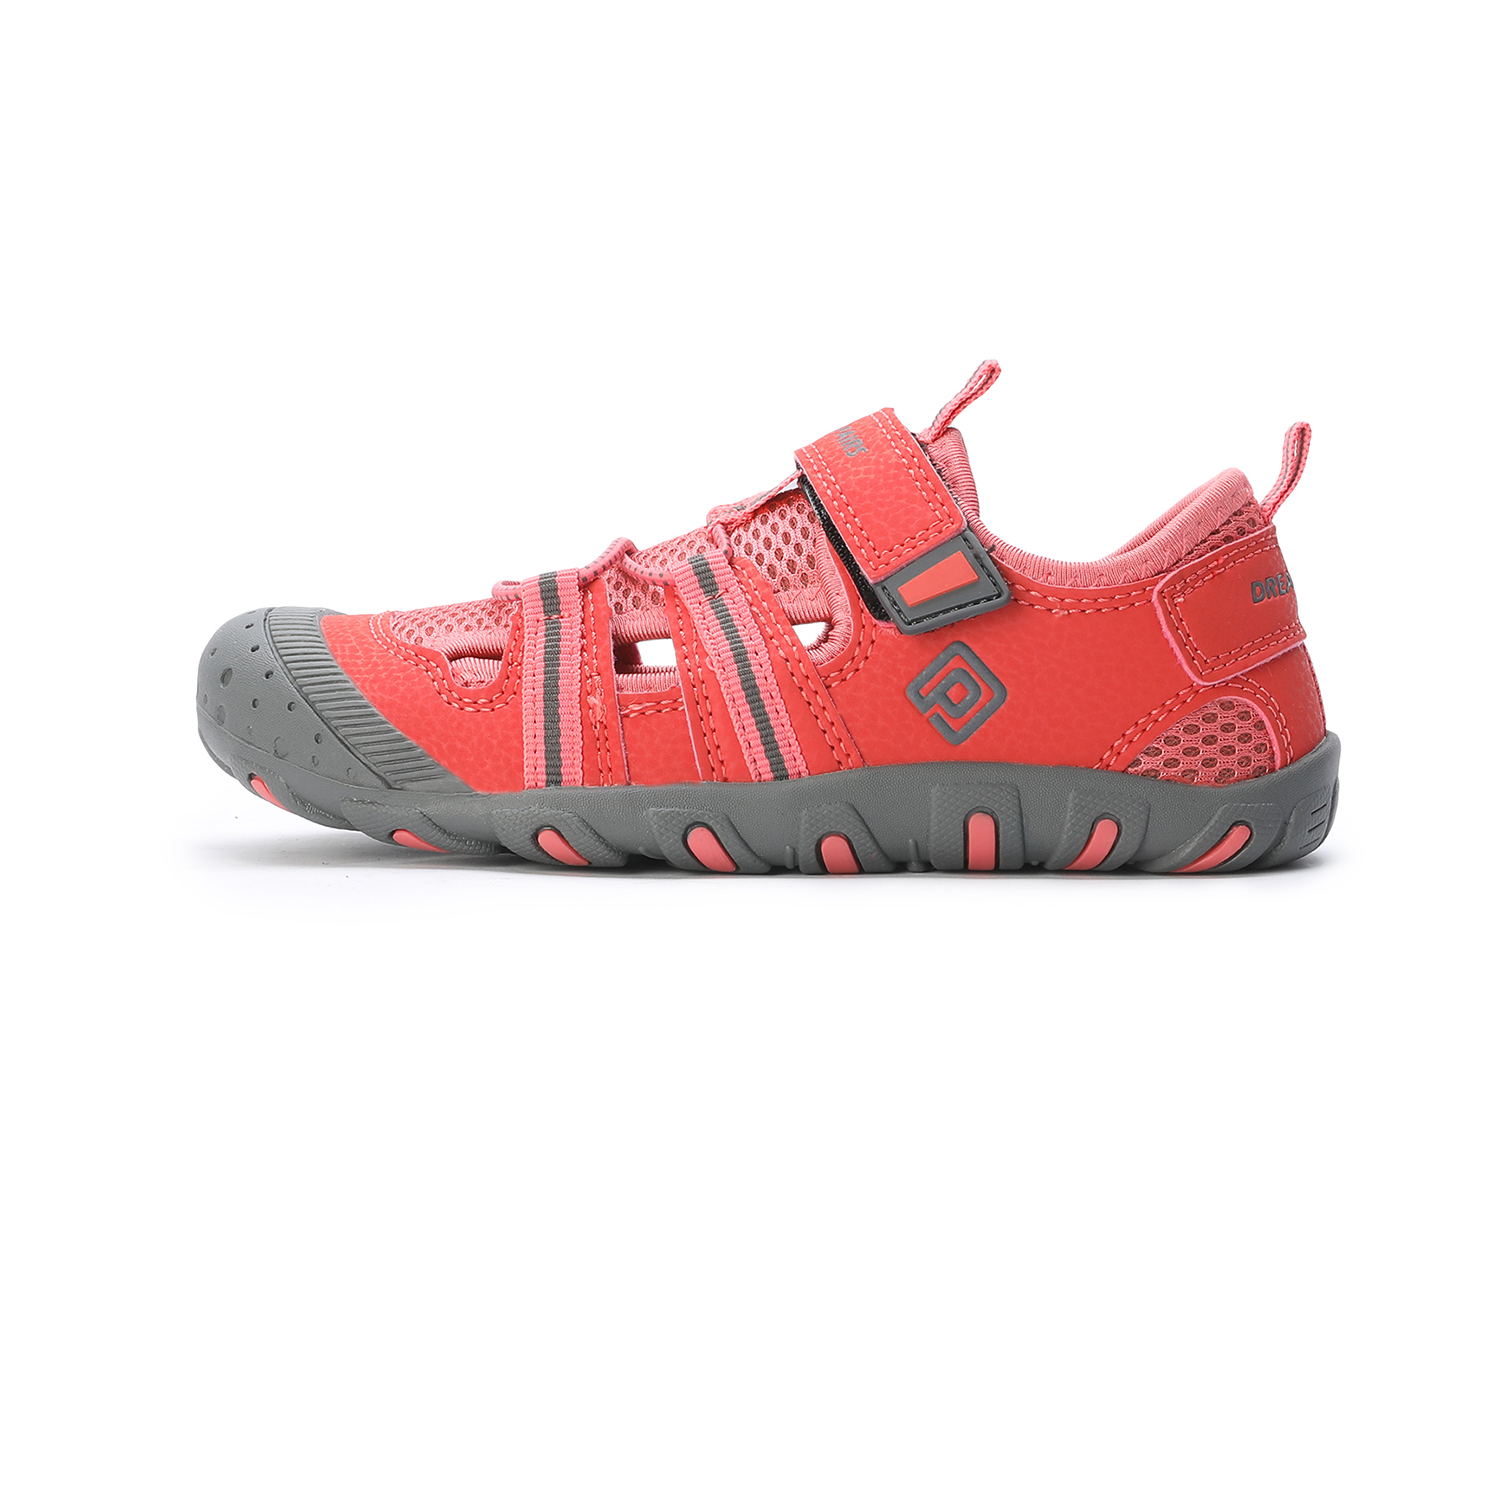 DREAM PAIRS Boys Girls Closed-Toe Breathable Athletic Outdoor Summer Sandals